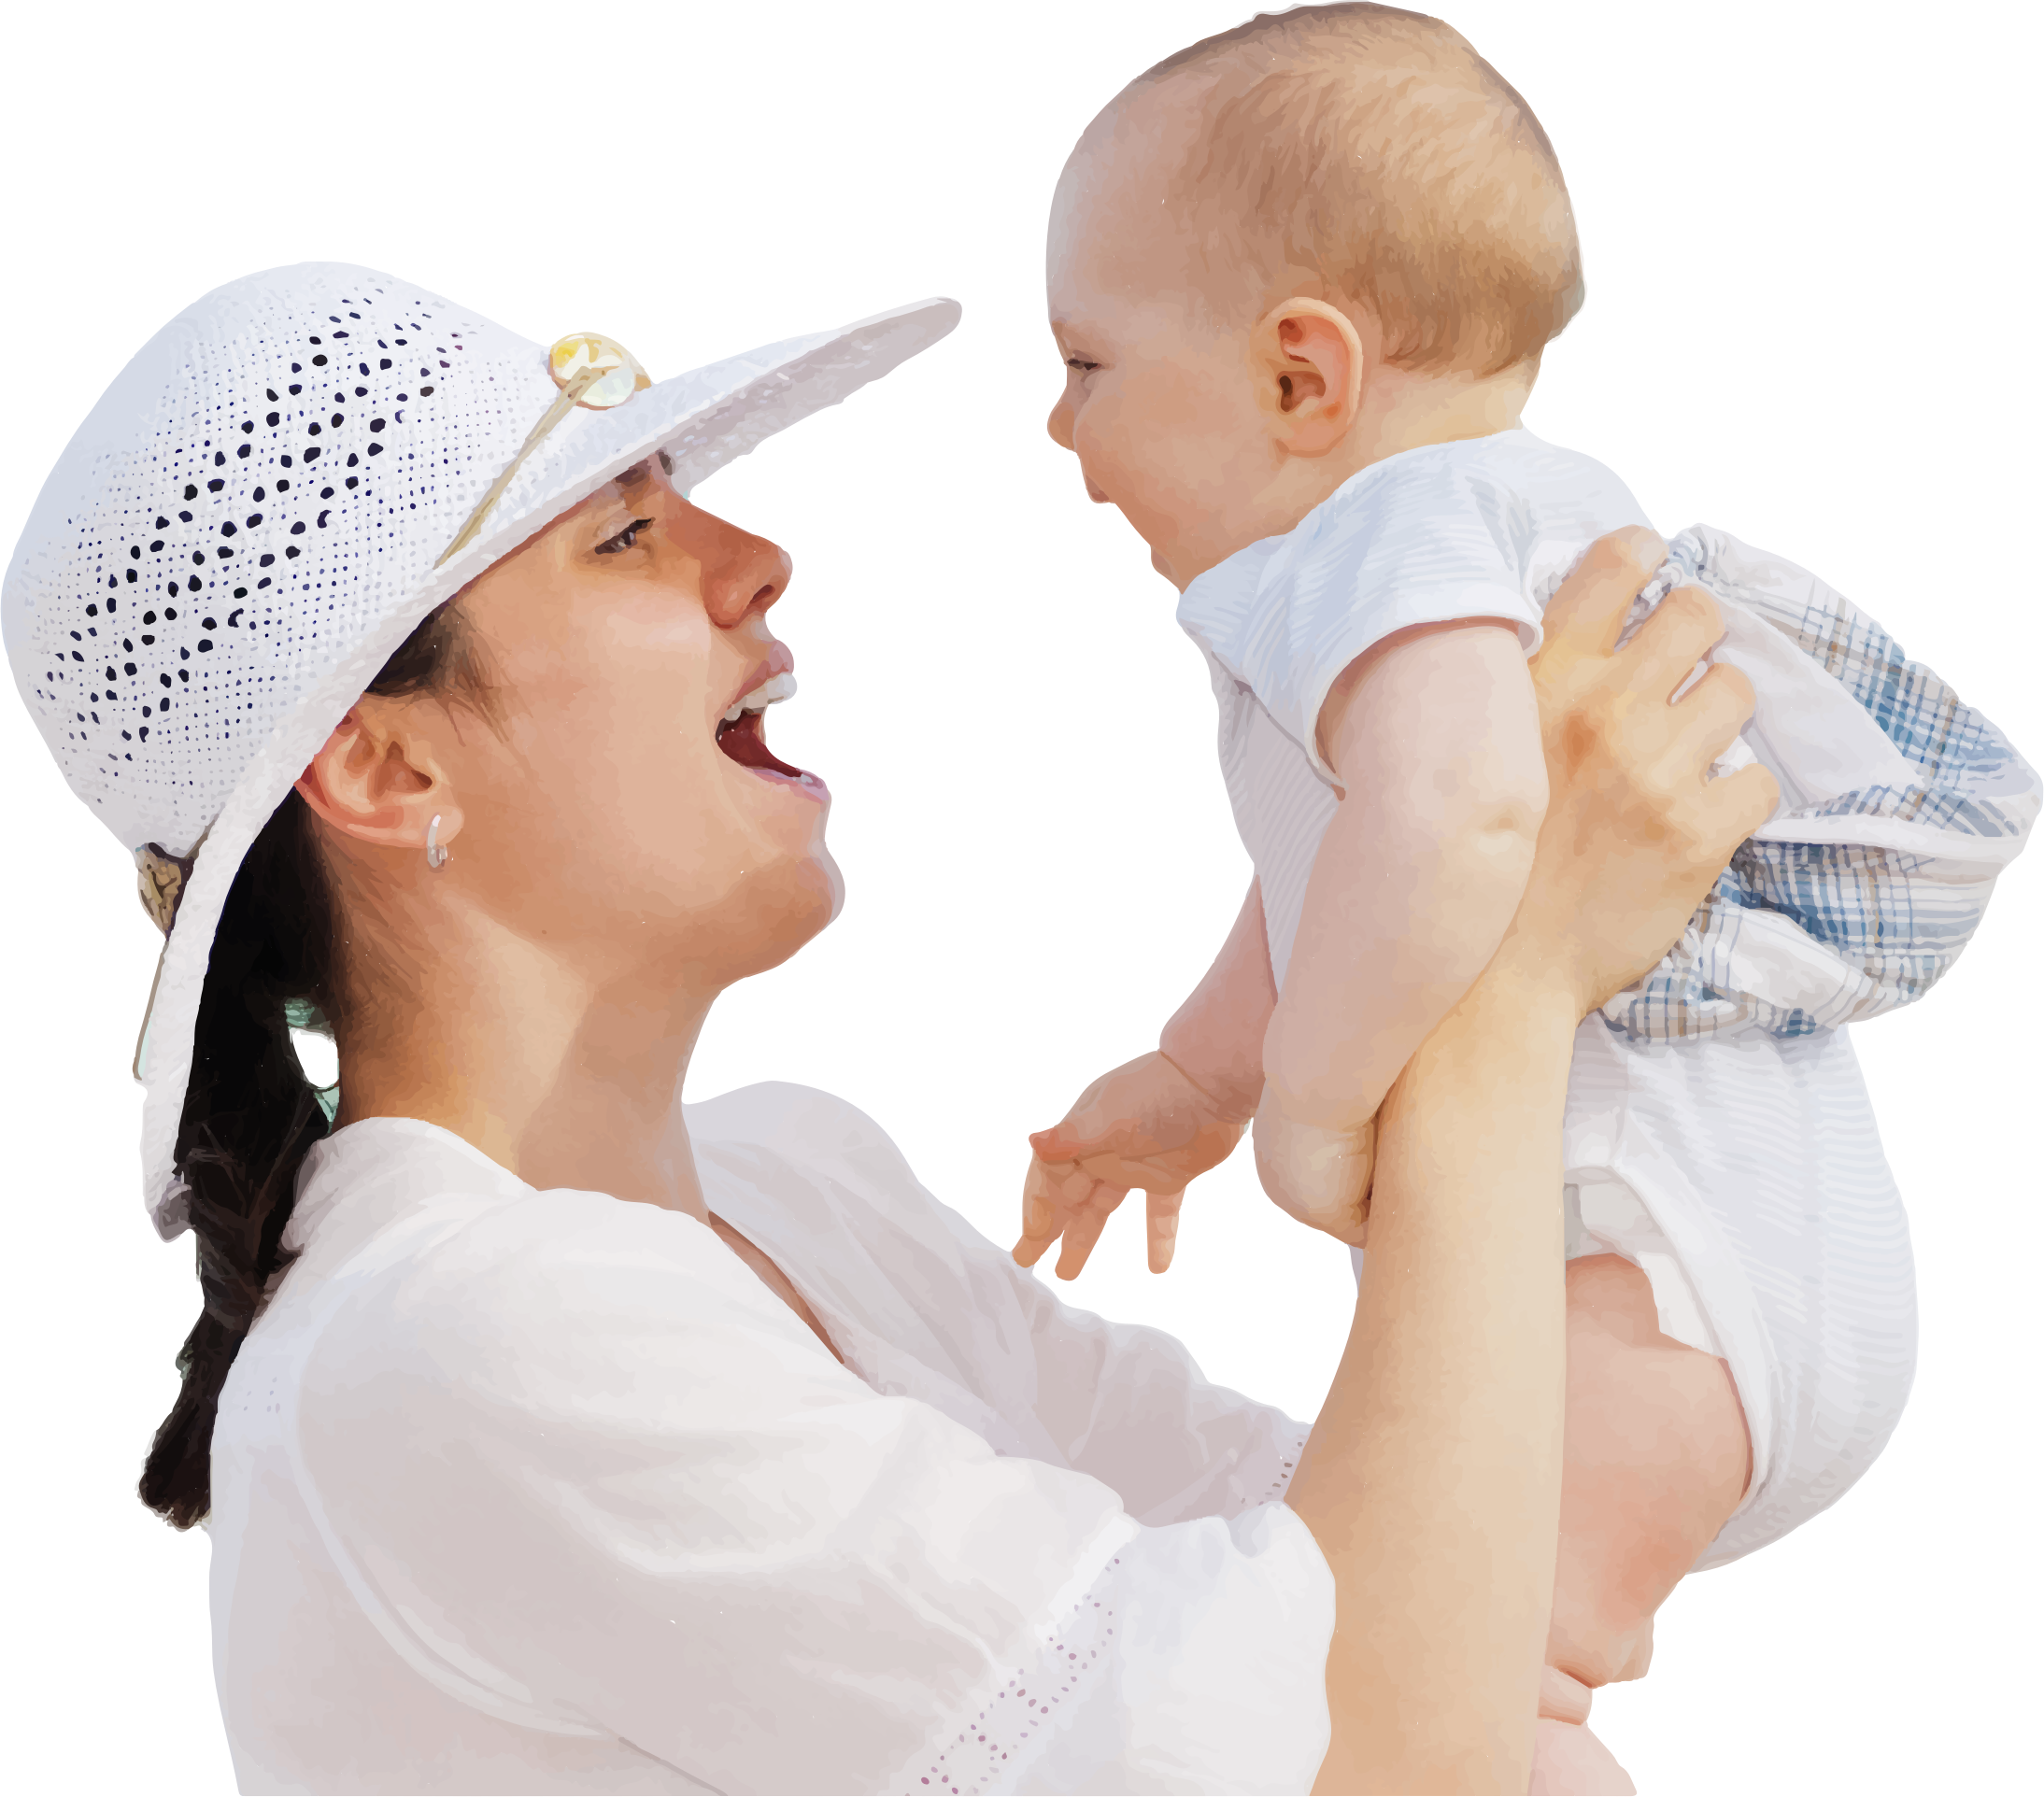 Mother child png. Transparent pictures free icons